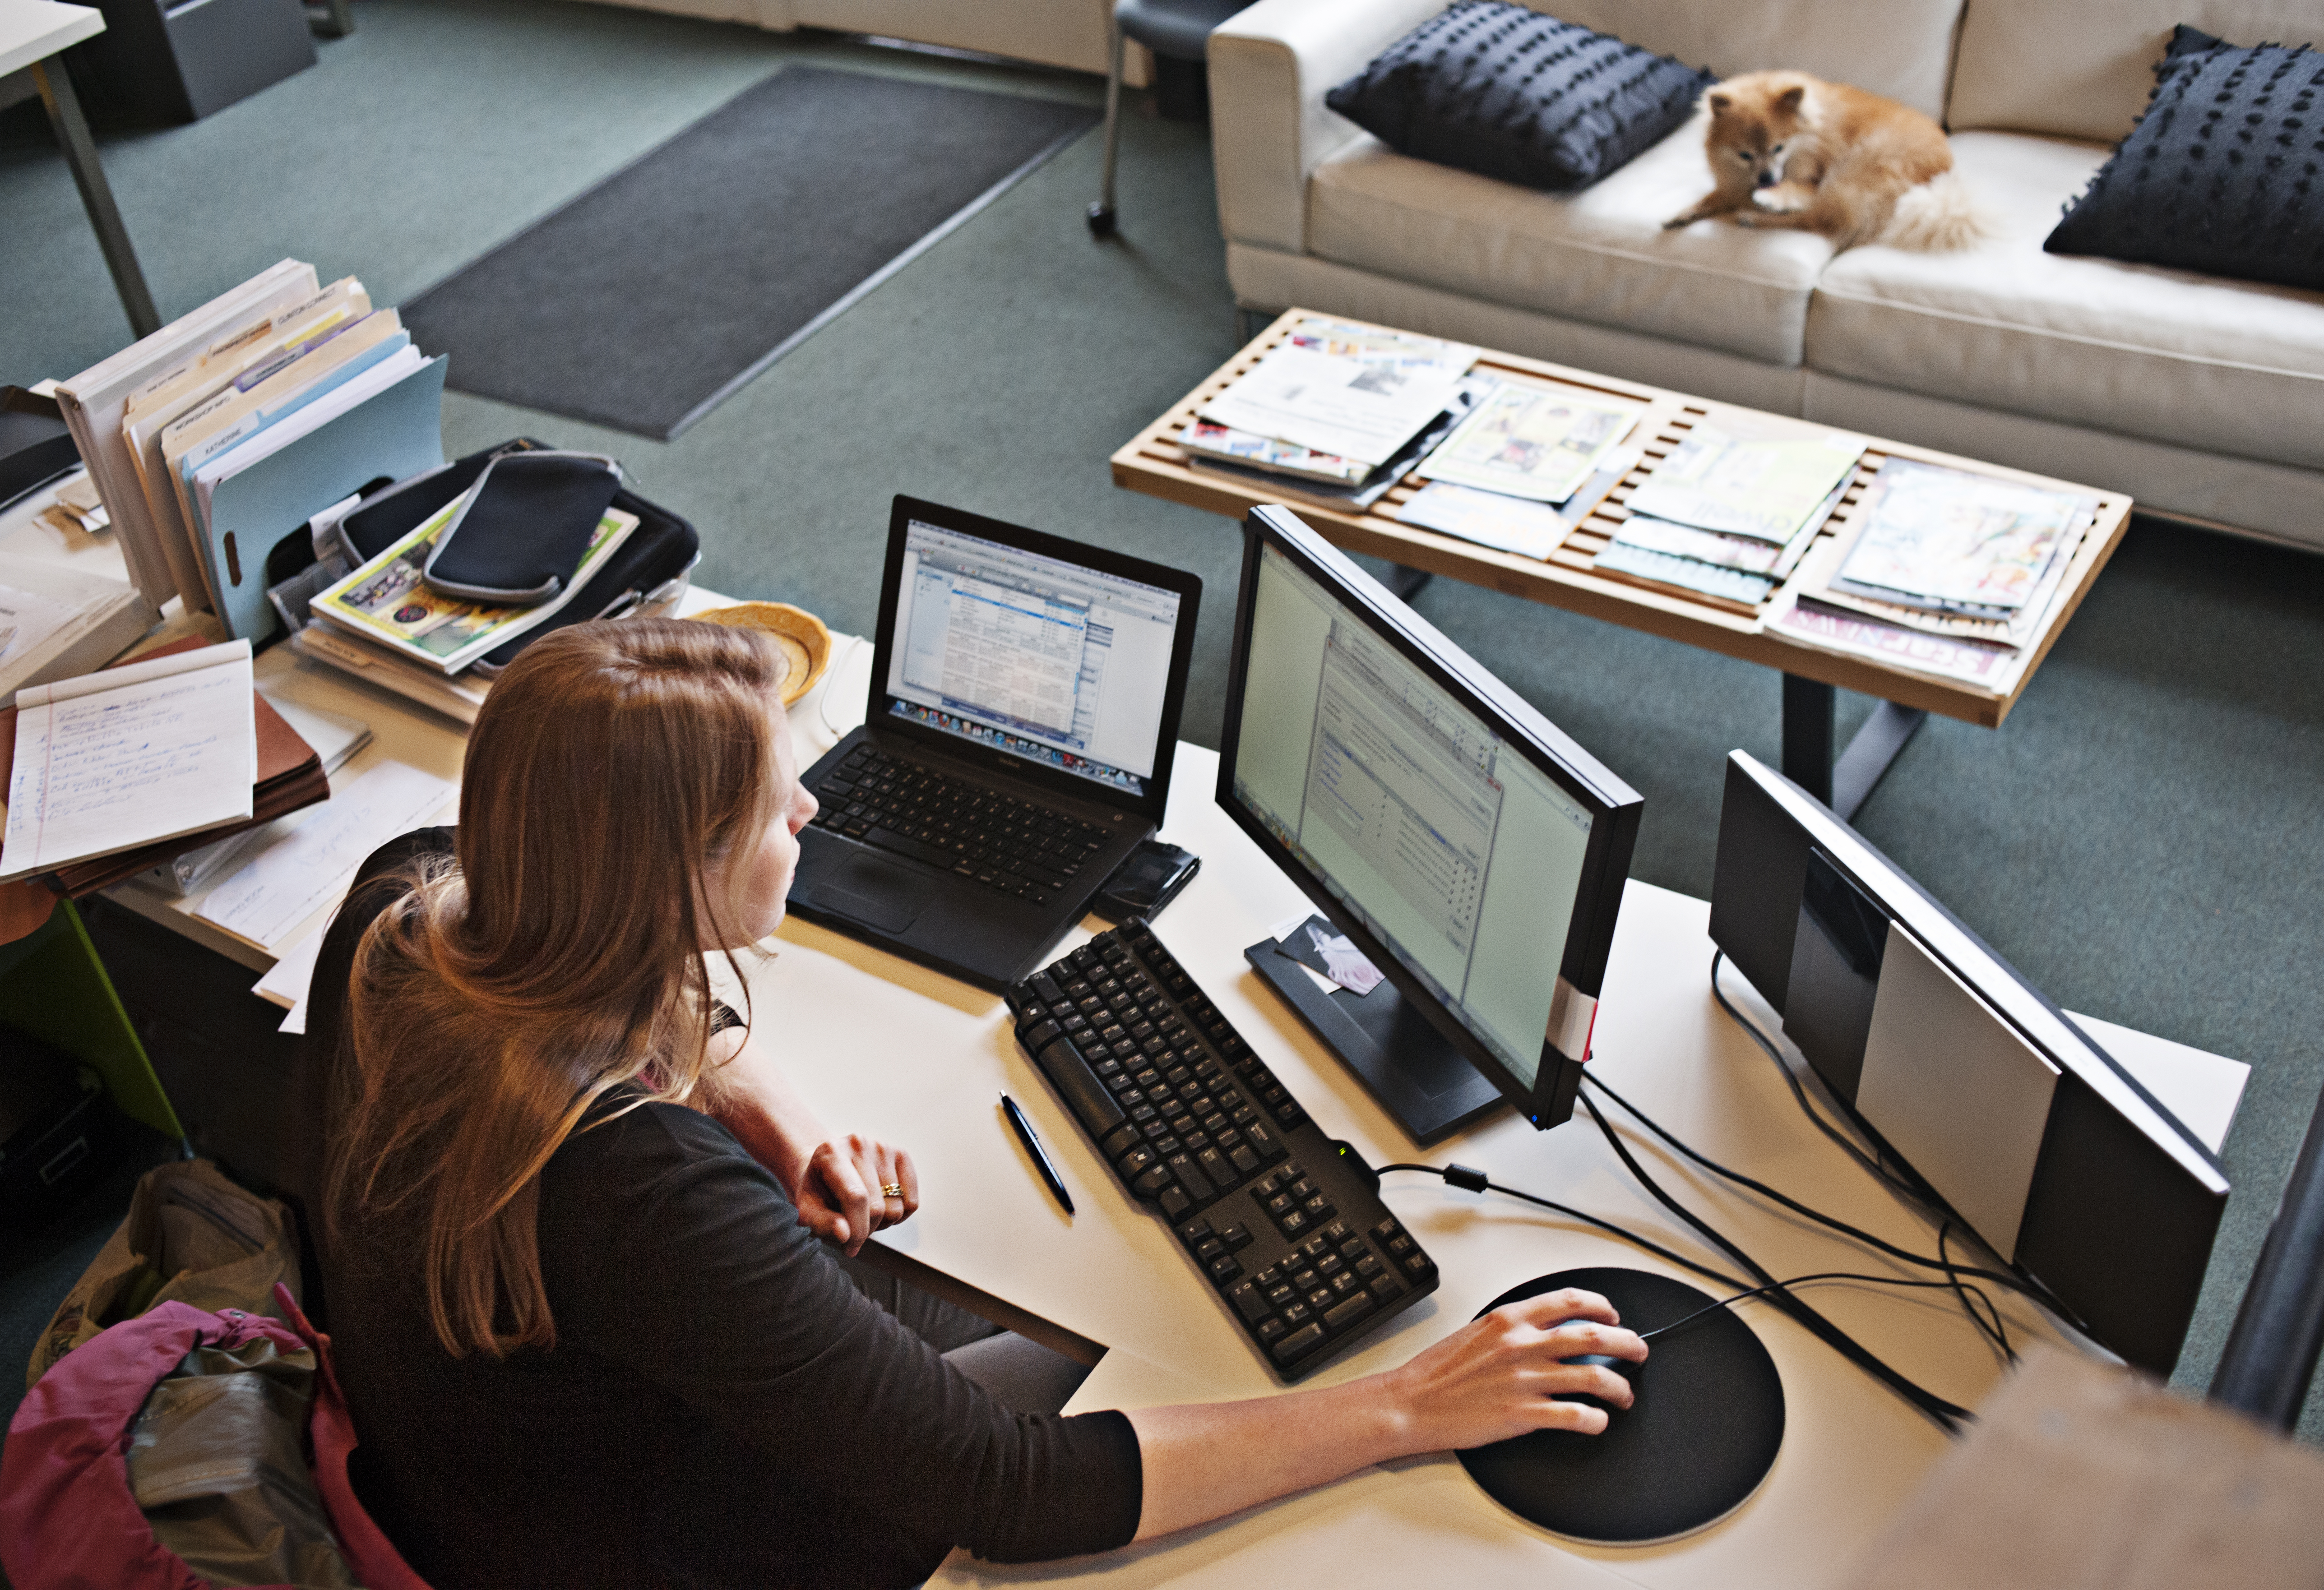 A woman works at an office desk that is located in a private living room.